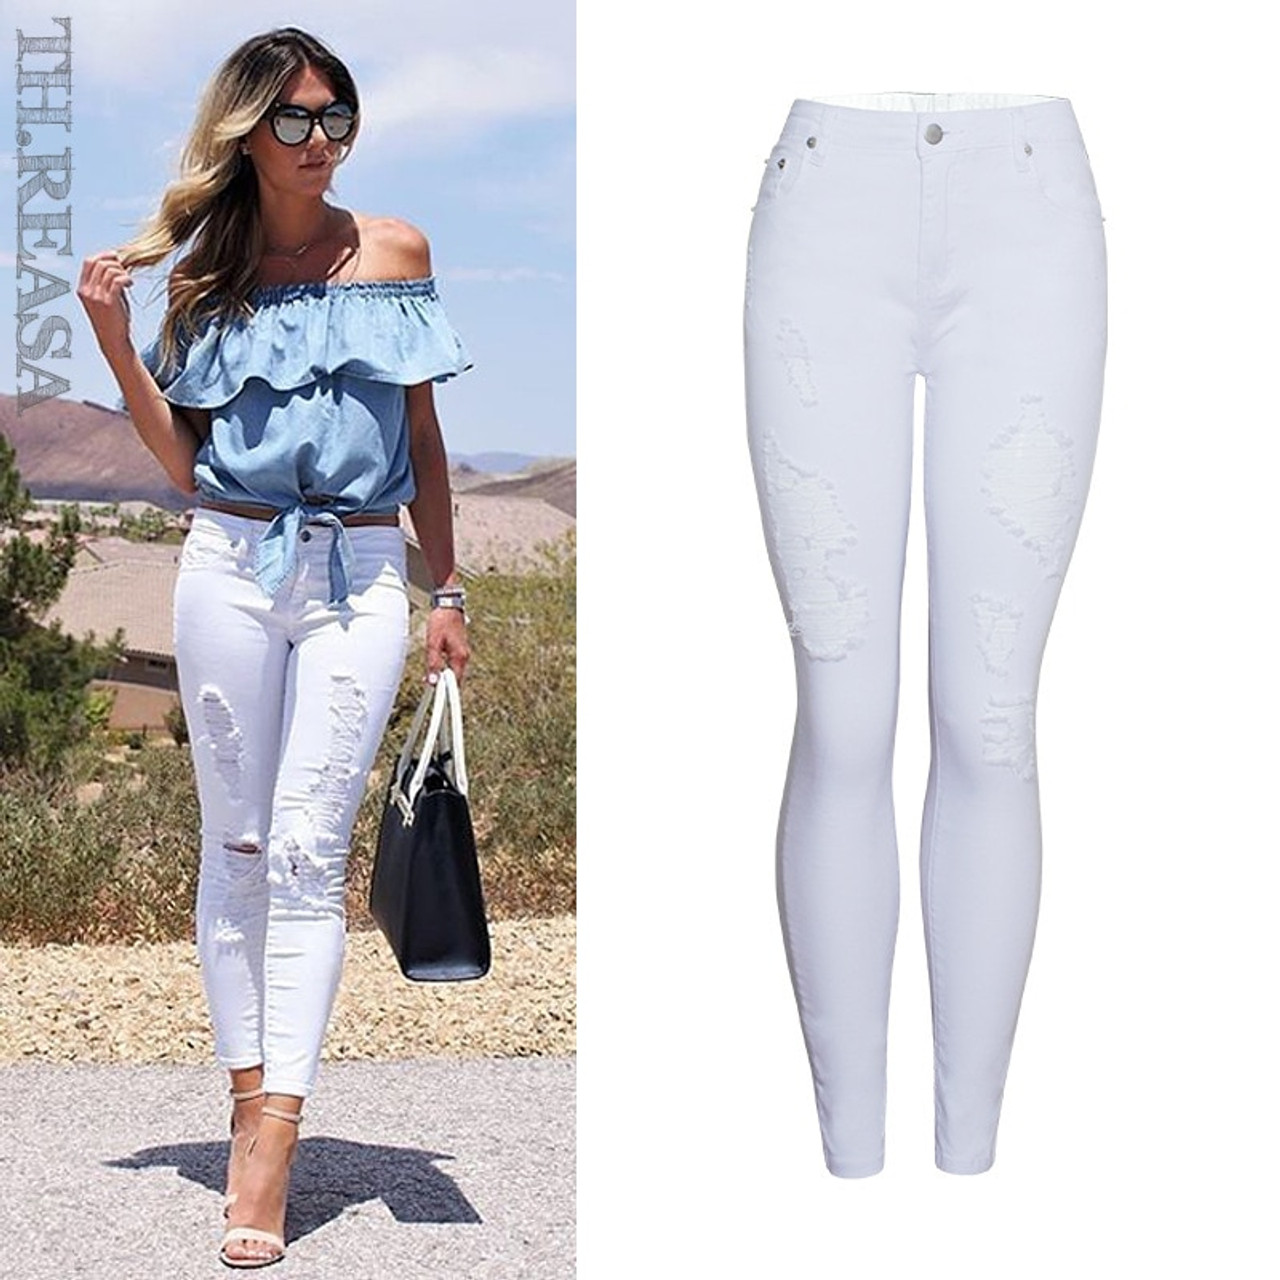 7f044d54fab Summer Style White Hole Ripped Jeans Women Jeggings Cool Denim High Waist  Pants Capris Female Skinny Casual Jeans